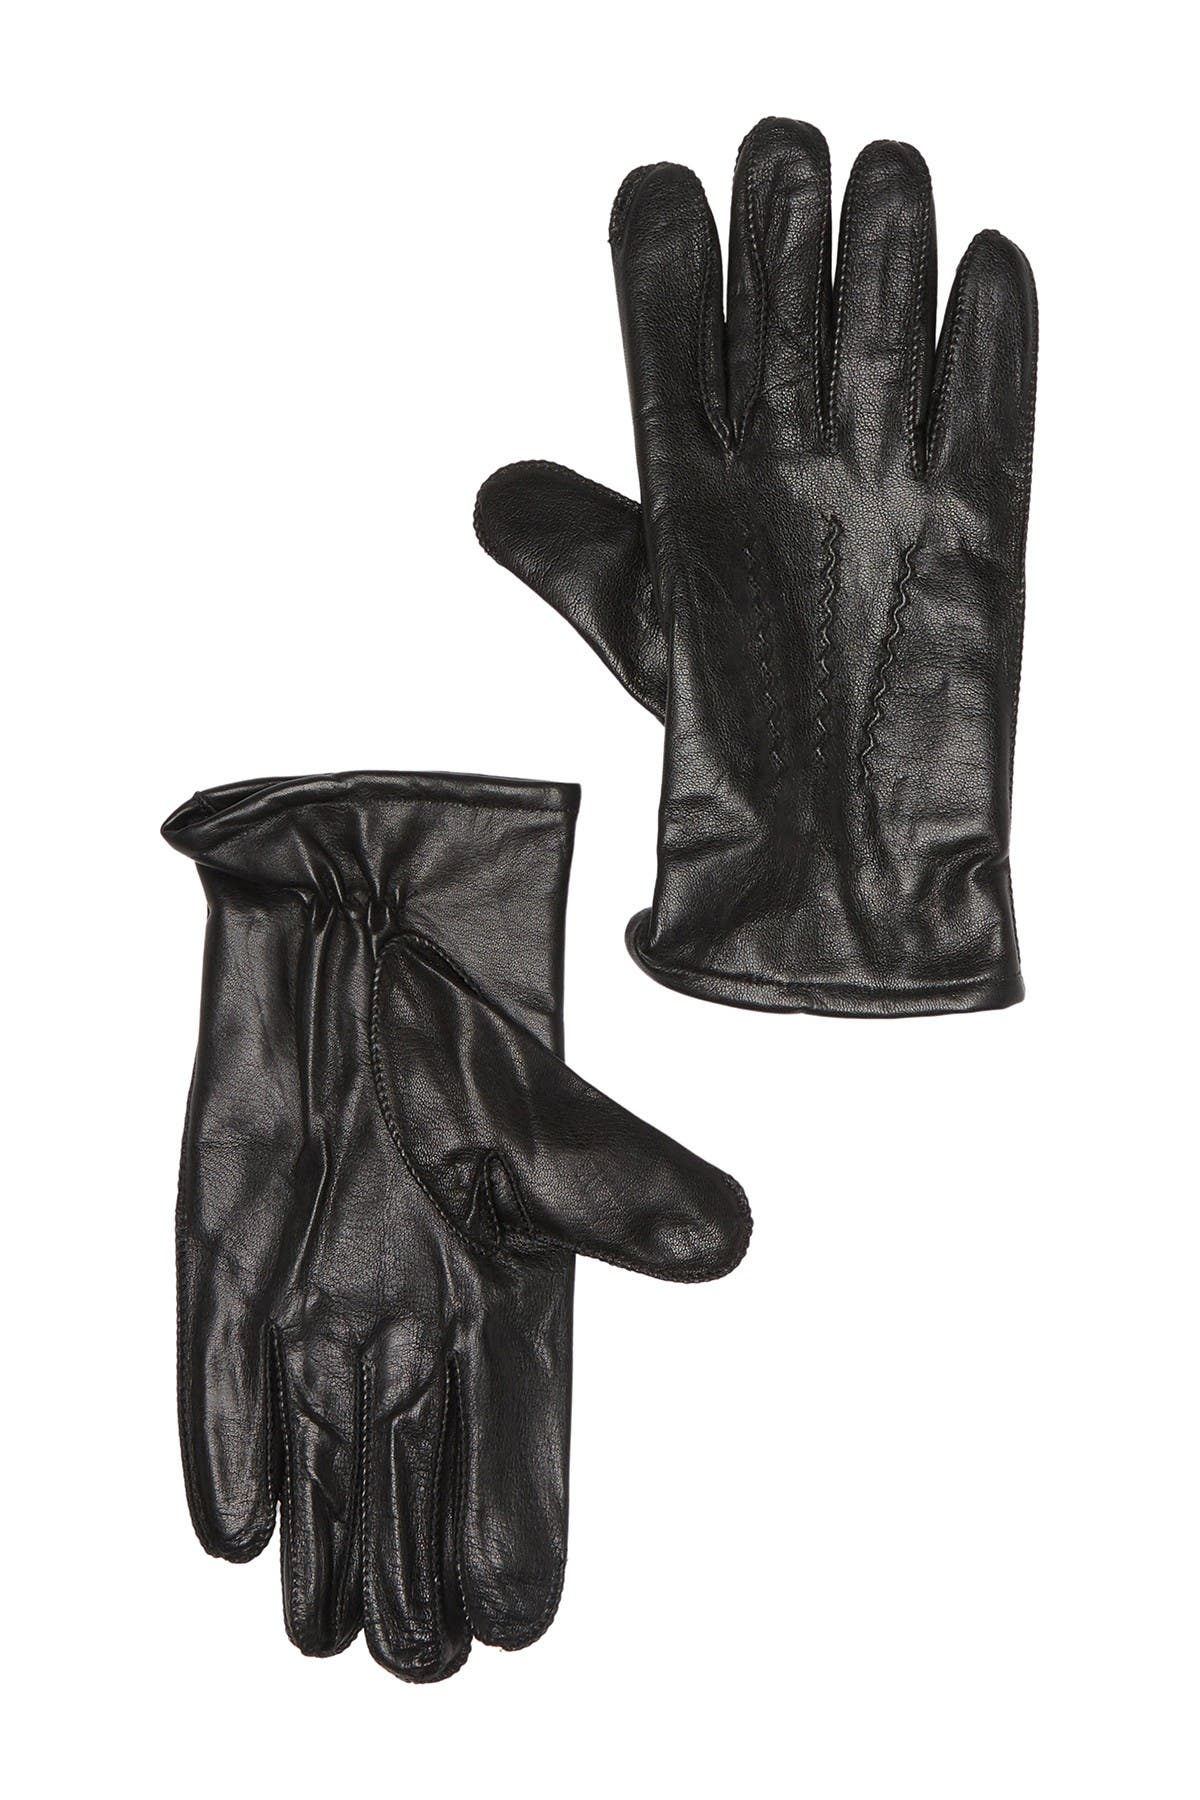 Image of Fownes Bros Wool & Cashmere Blend Lined Leather Gloves